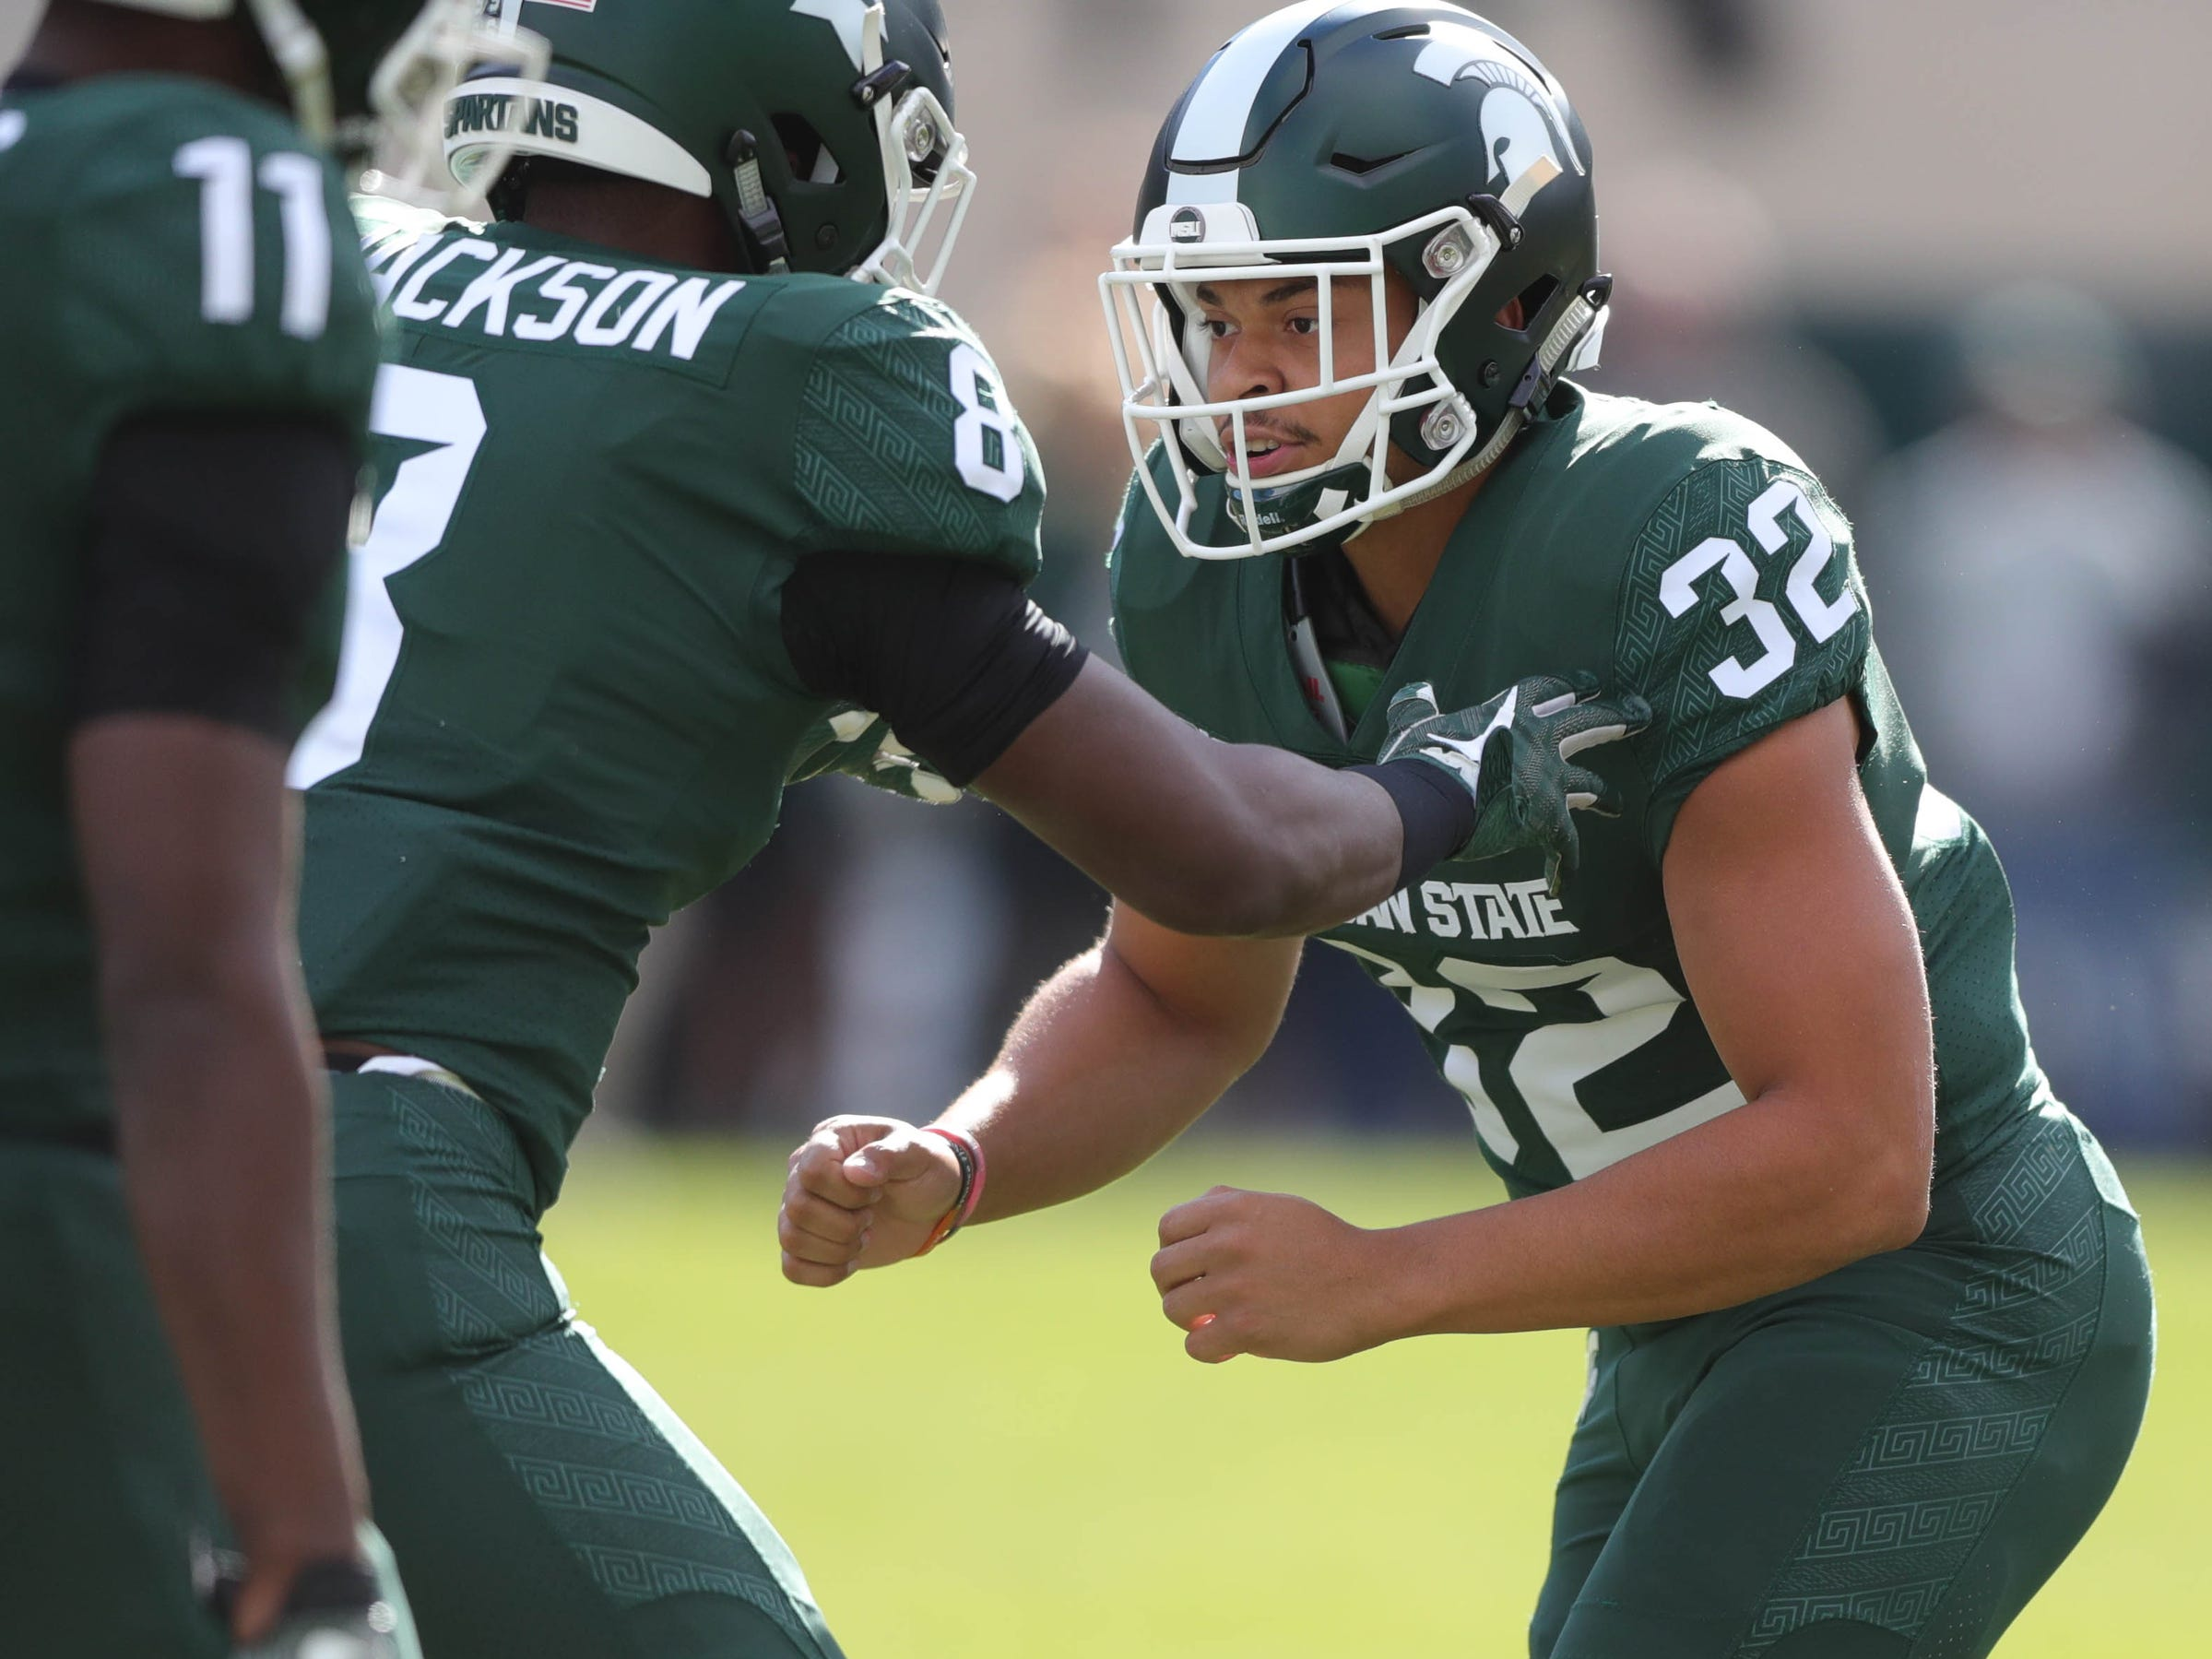 Michigan State's Corey Pryor warms up  before action against Michigan  on Saturday, Oct. 20, 2018, at Spartan Stadium in East Lansing, Mich.